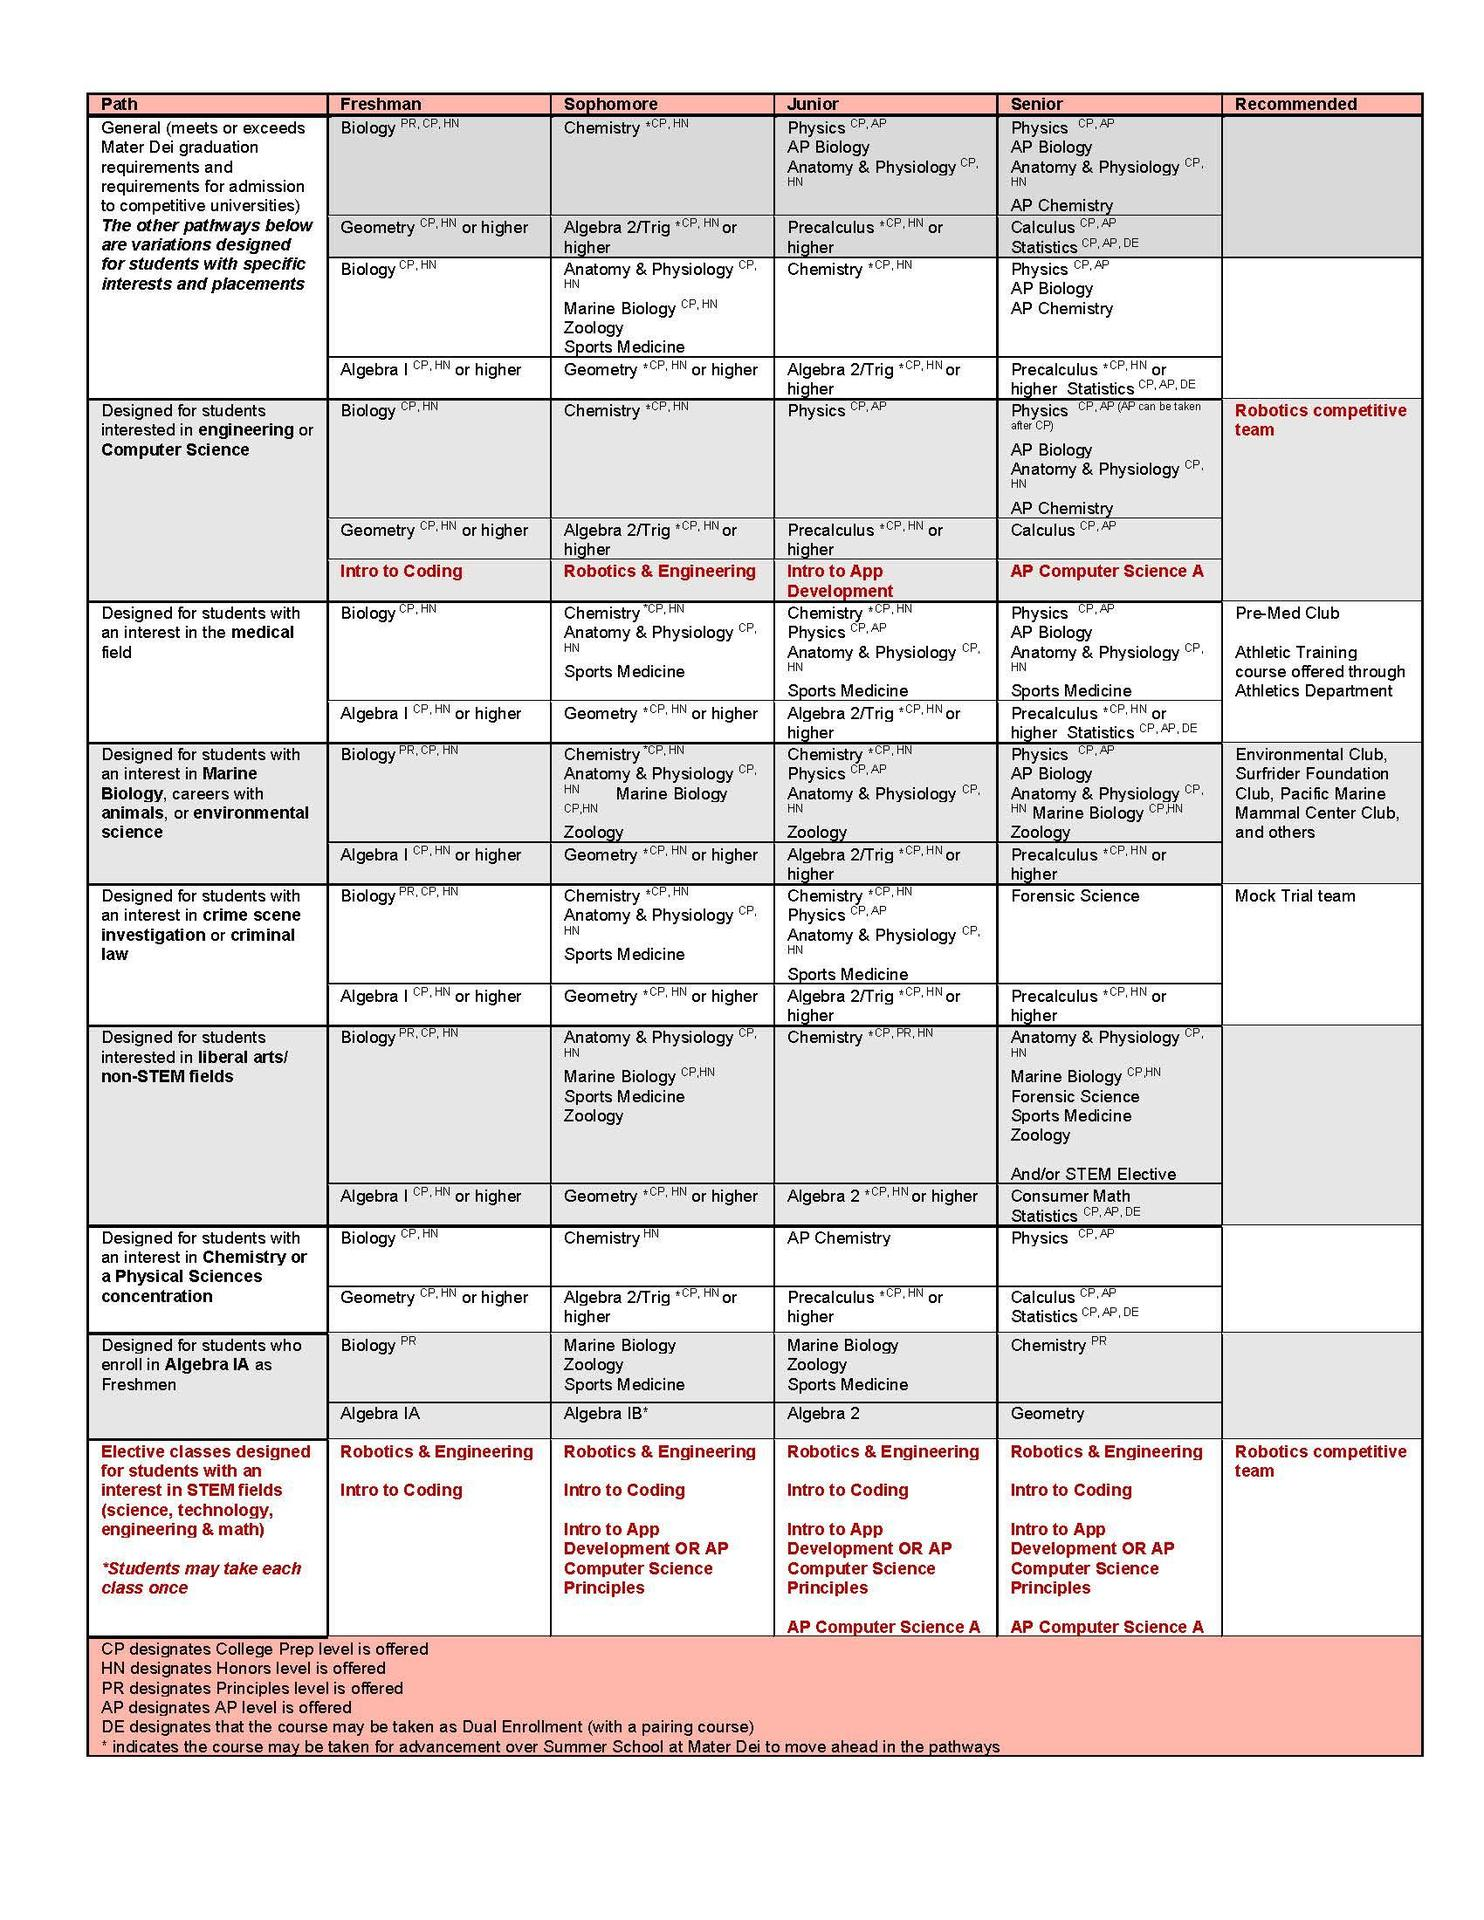 see the MDHS Course Catalog if you do not see the pathways